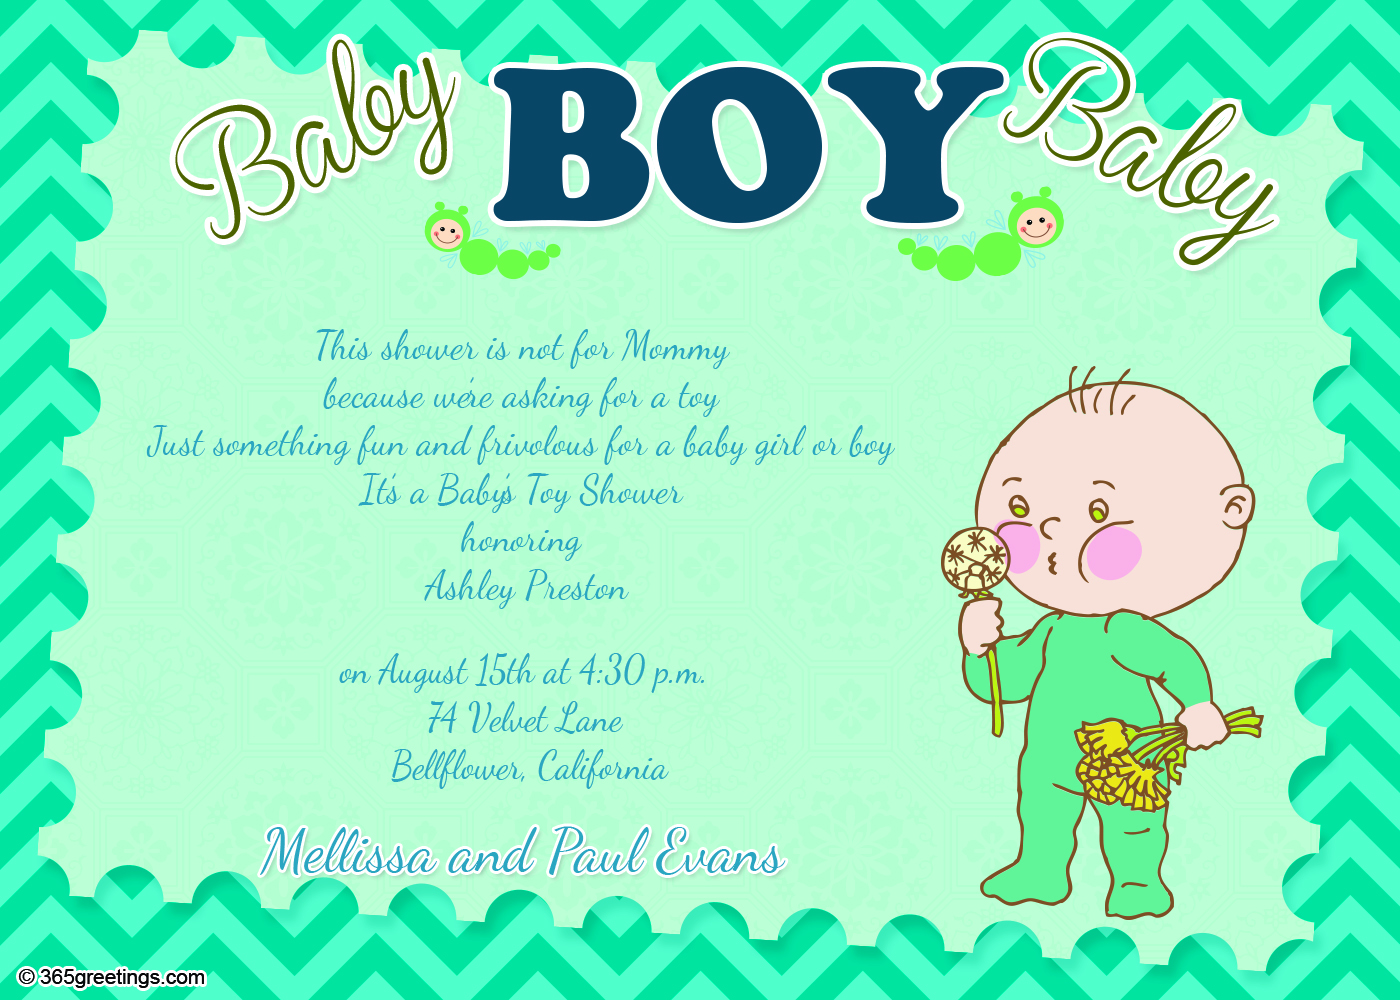 Baby Shower Invitation Wording For Boy